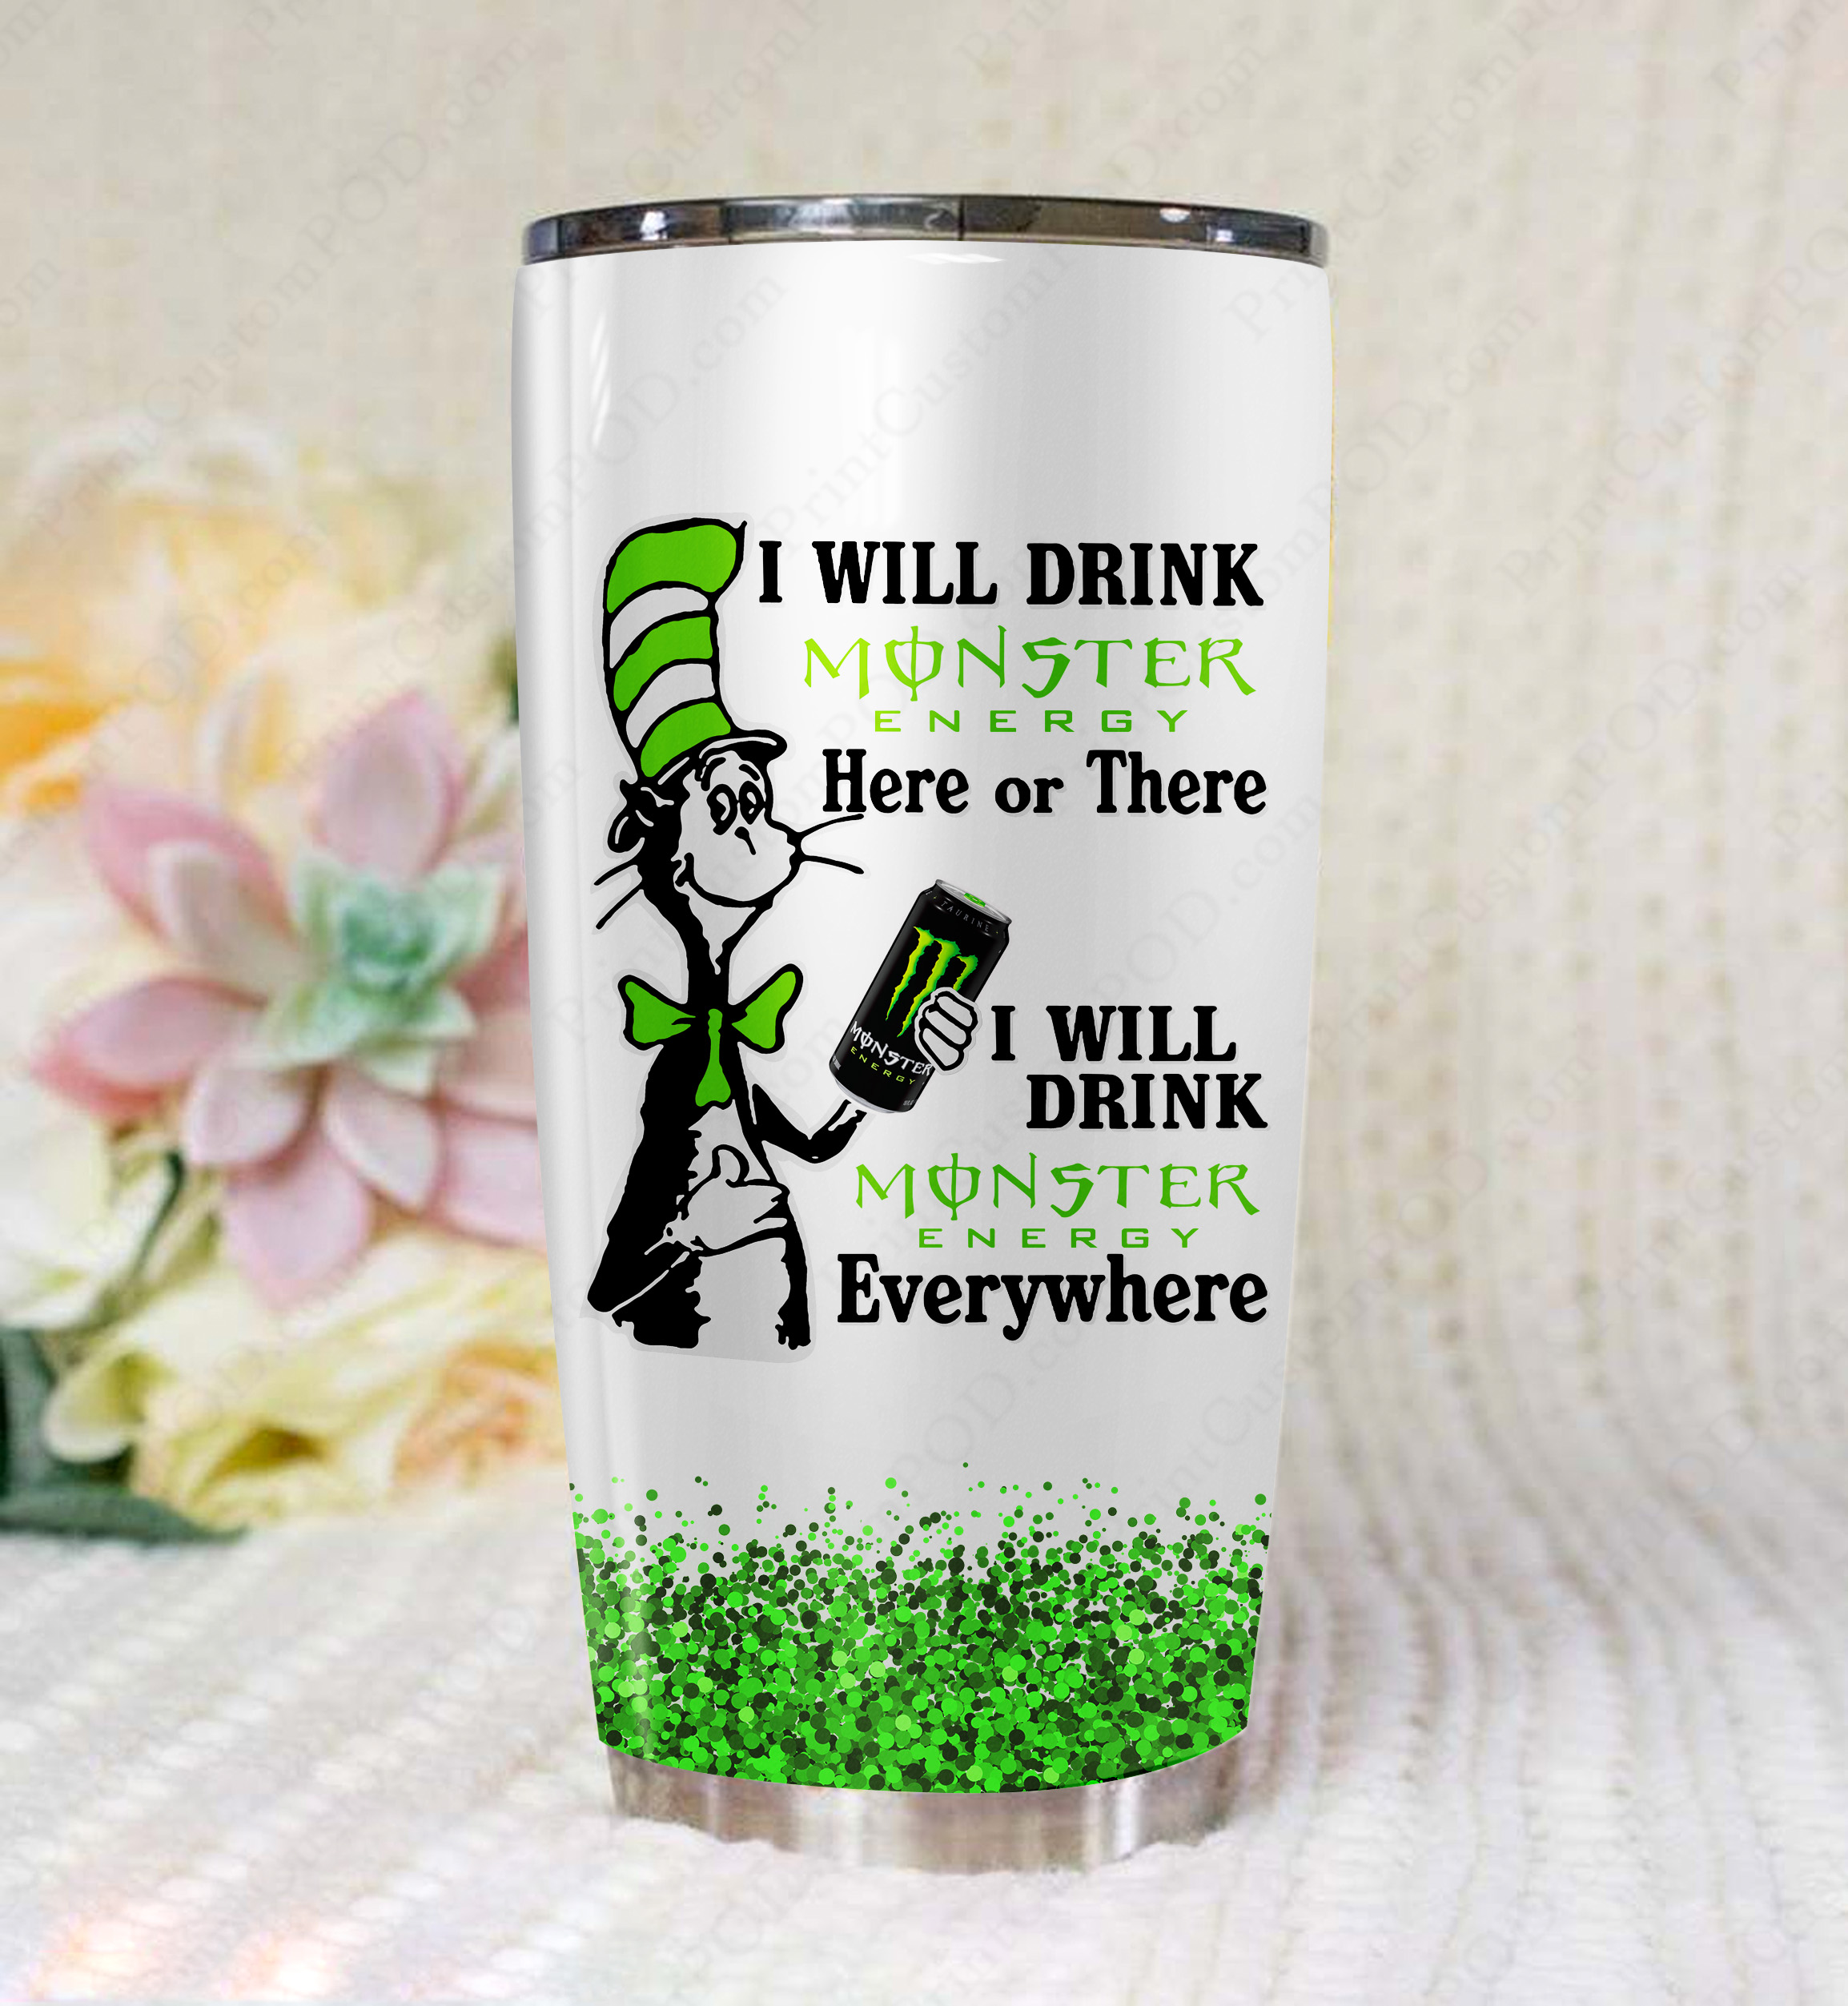 Dr seuss i will drink monster energy full over printed tumbler 3